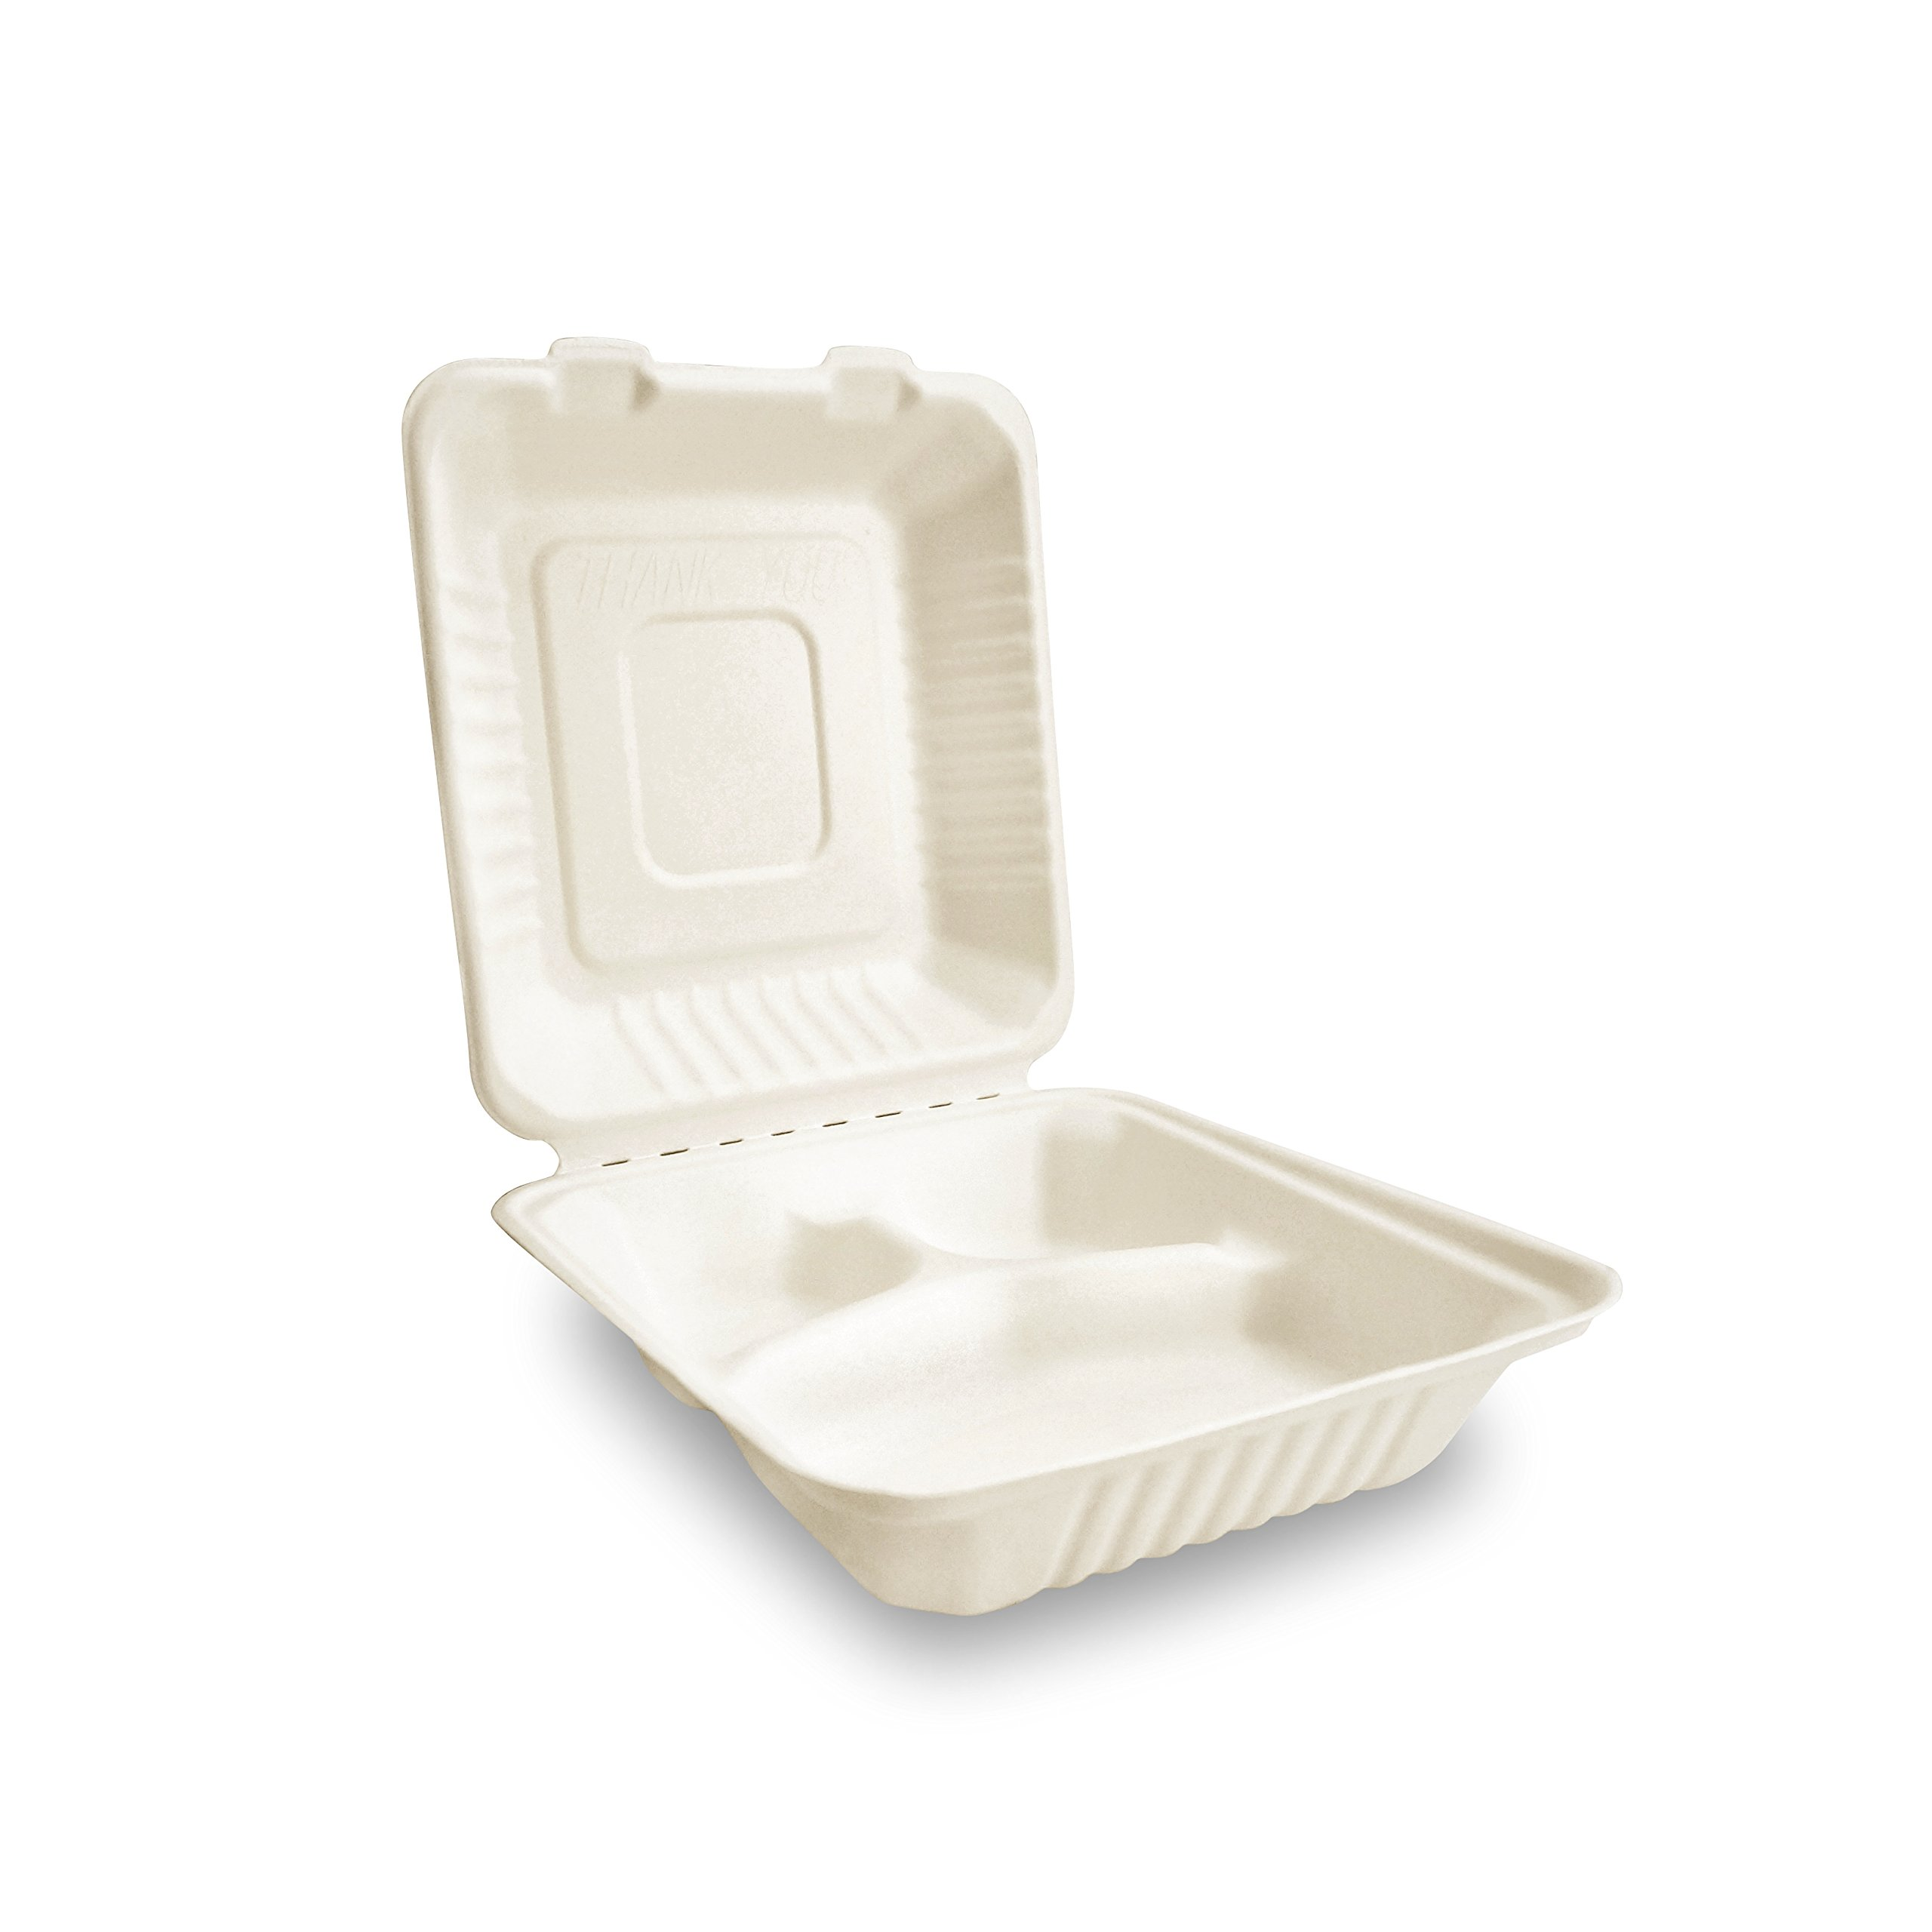 Restaurant/School Take Out Food Container by Green Earth,with Clamshell Hinged Lid, Natural Bagasse (Sugarcane Fiber) Eco-Friendly, 8 inches, 3 Compartment - (200 Count)